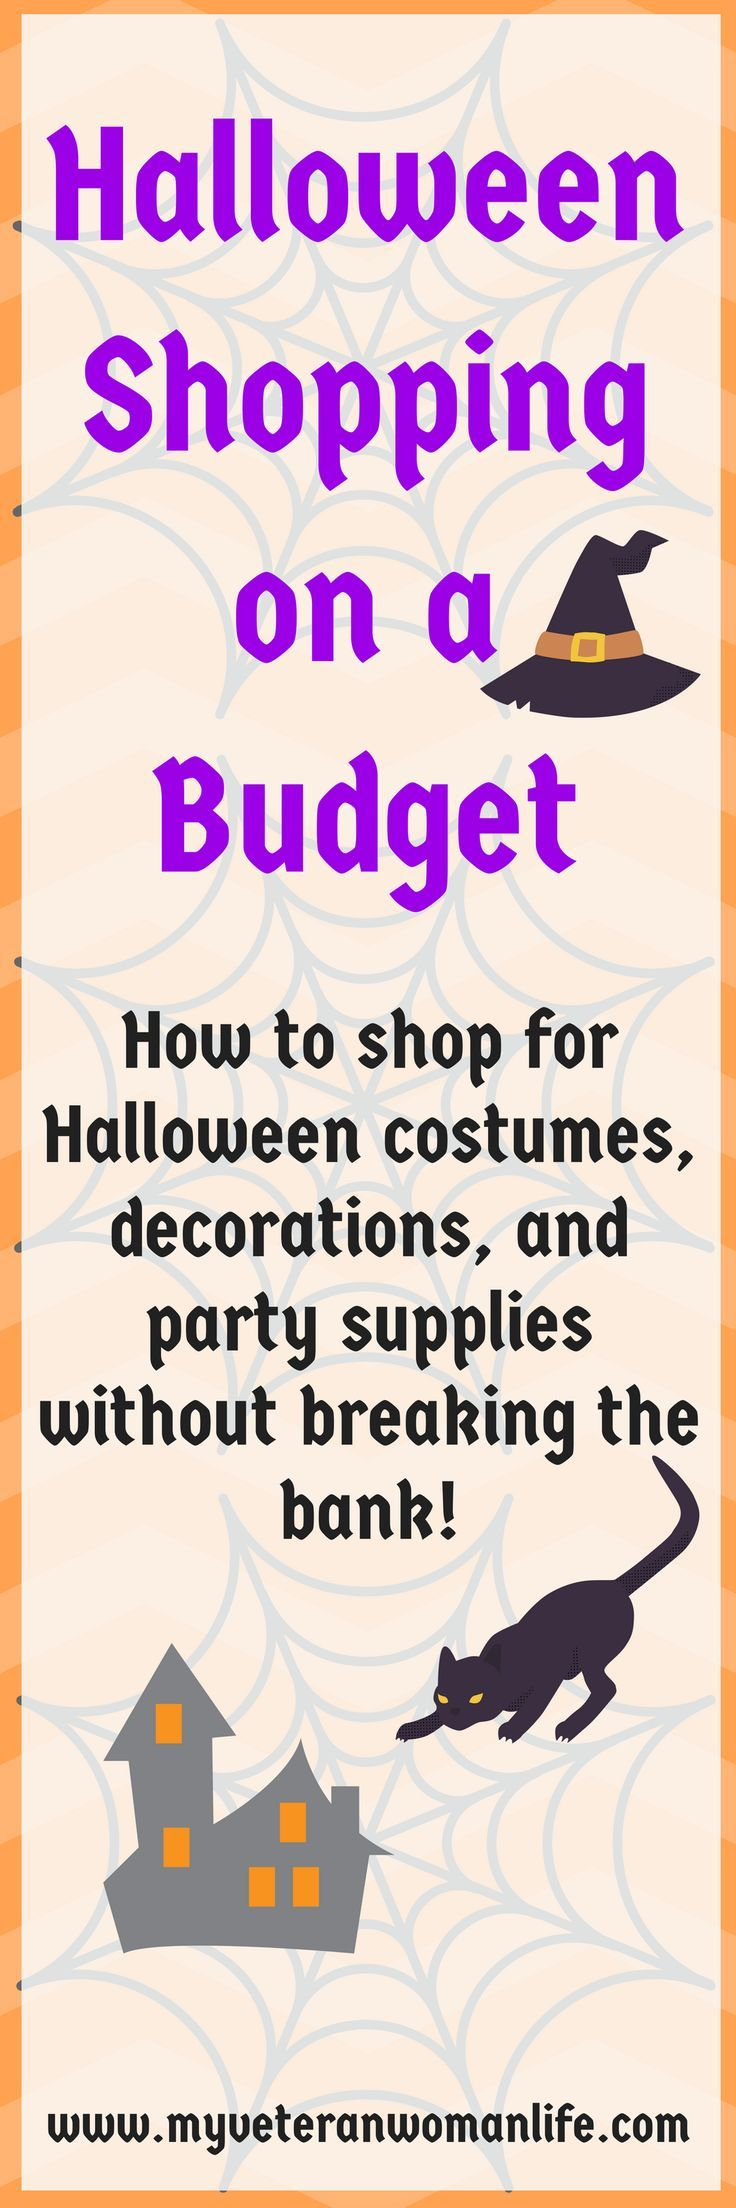 See how I do my Halloween shopping on a budget and still buy the scariest decorations and costumes for my family and pets!  You can maximize your dollar by using savings apps and other programs for saving money on all of your Halloween shopping!